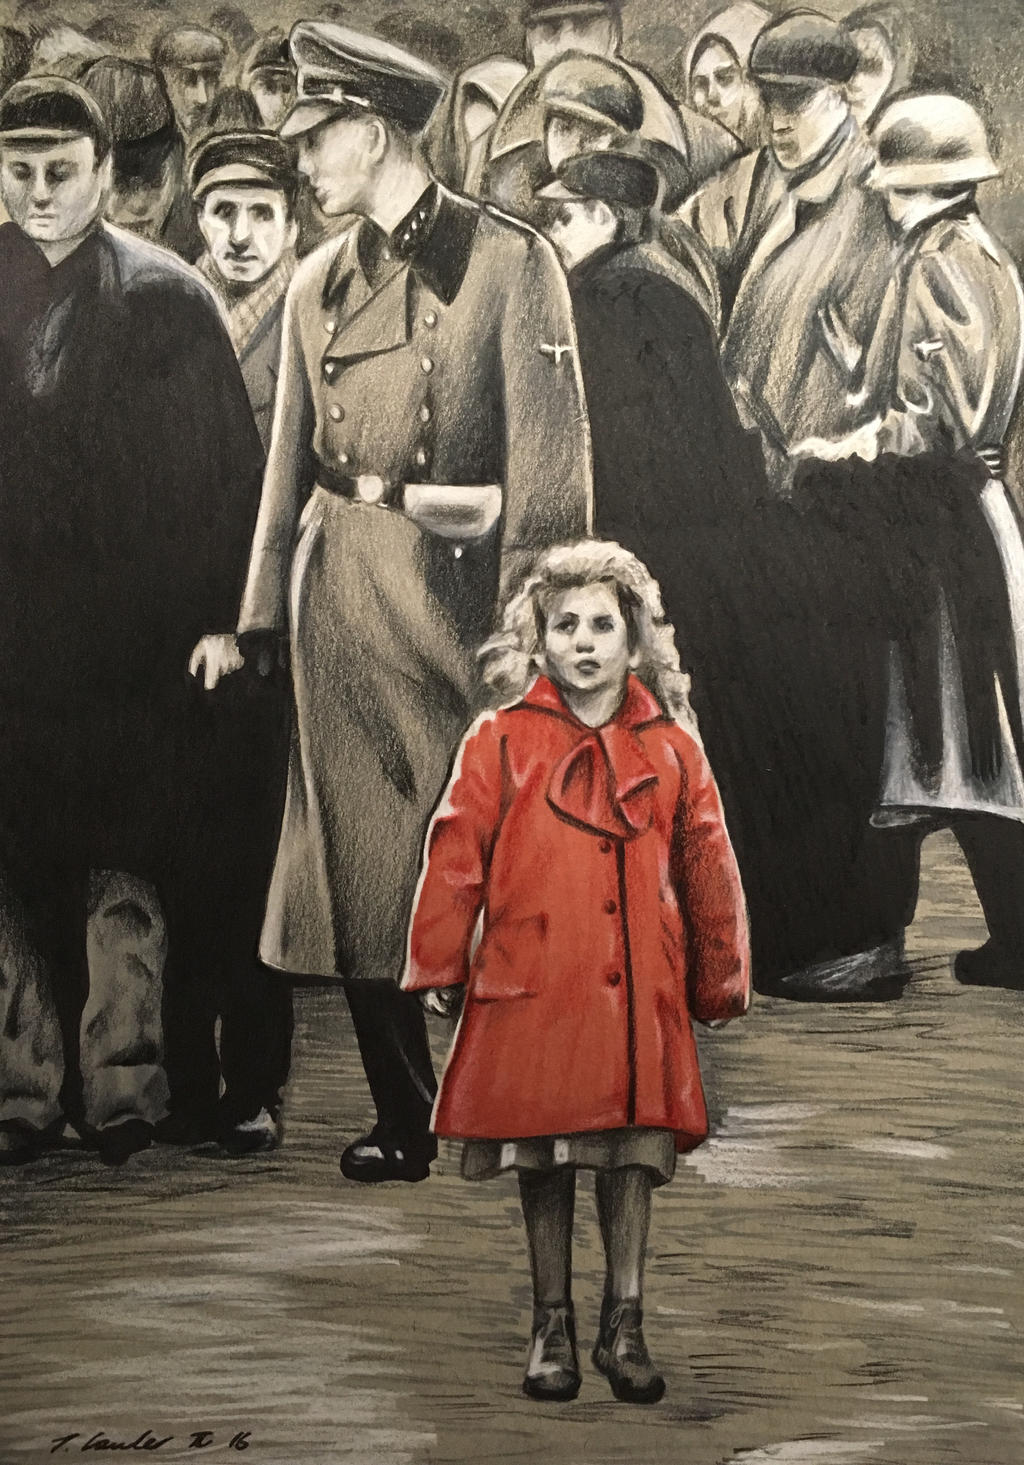 schindler s list the story of the When the nazis invaded poland, leon leyson was ten years old he recalls, suddenly, i lost my most basic rights i was hungry and frightened all the time.